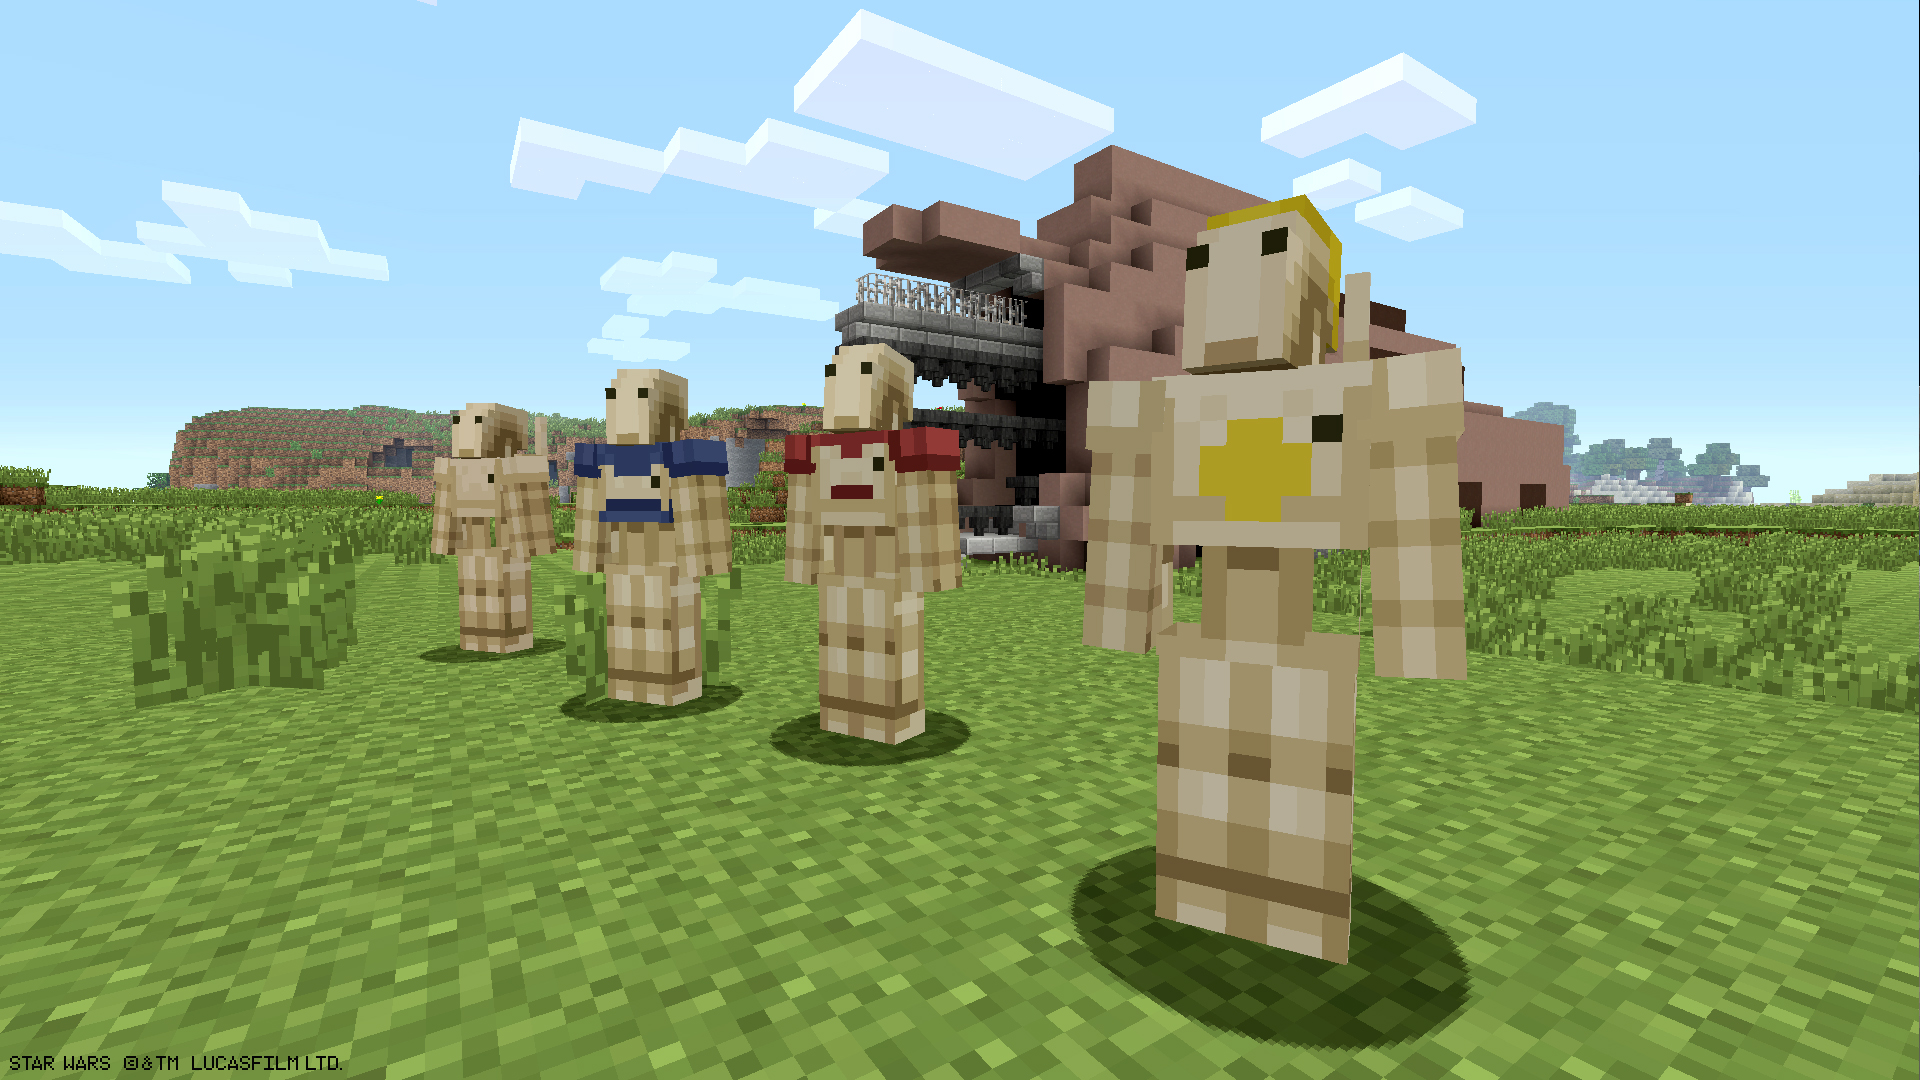 Star Wars Prequel Characters Land On Planet Minecraft Xbox Wire